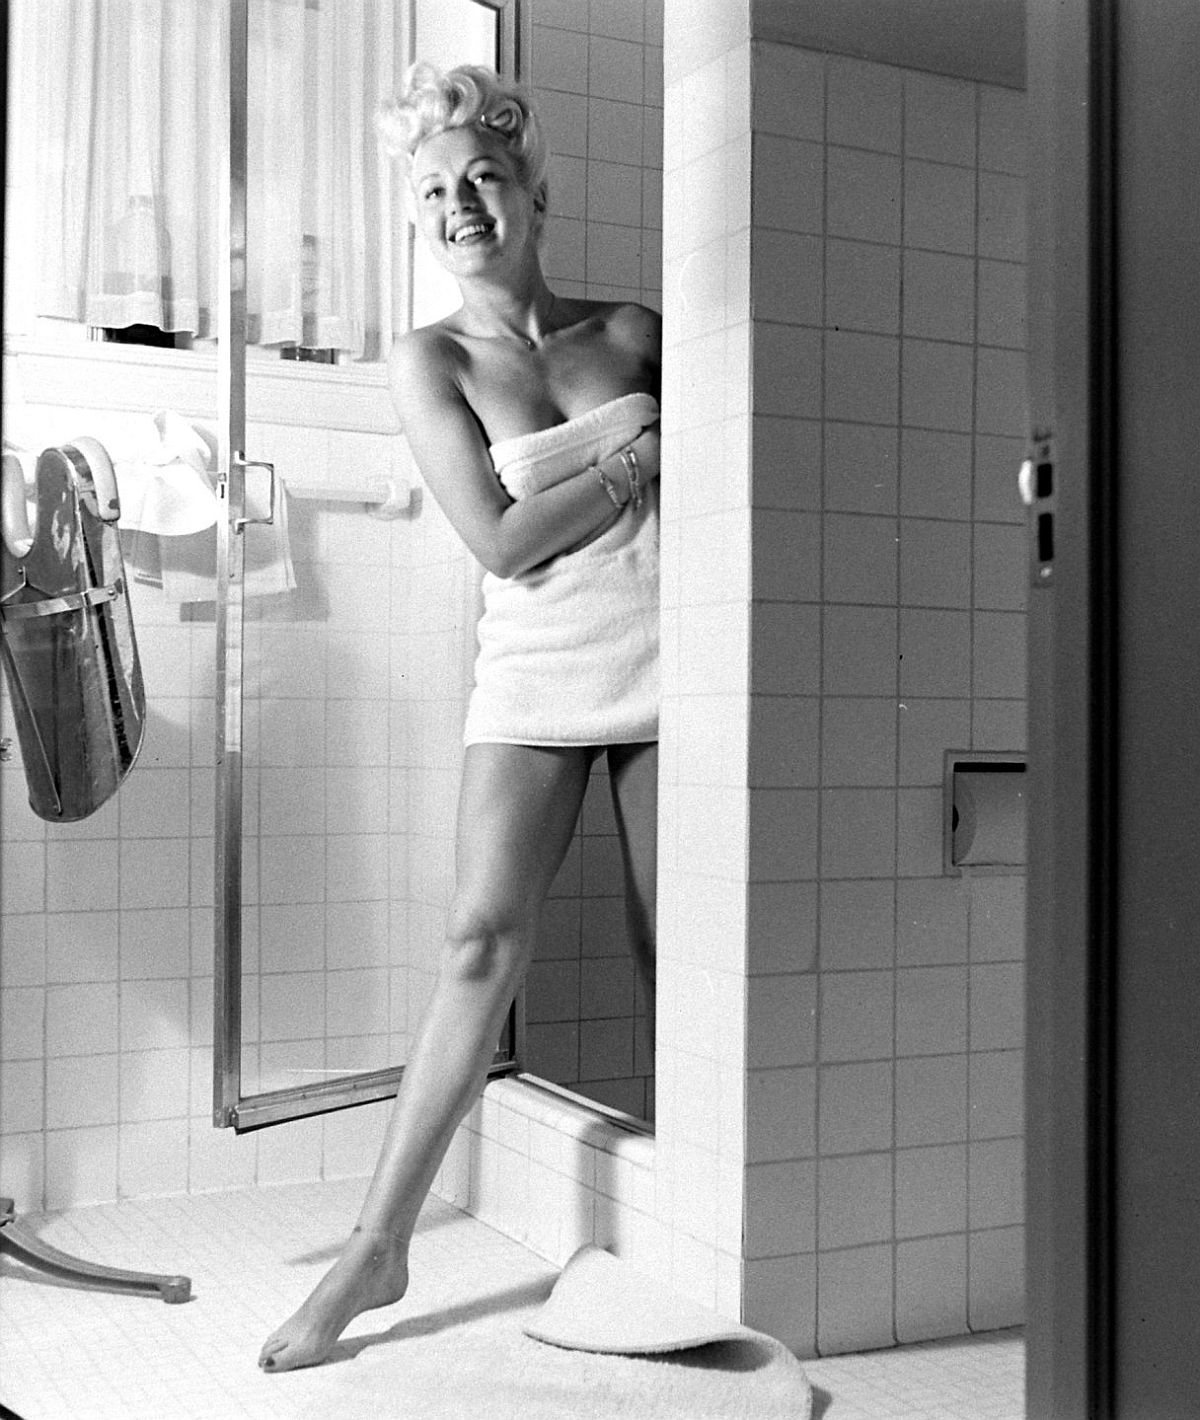 In the course of a day Betty's legs walk, climb stairs, dance and are generally flexed like other legs. Here the legs are shown as she prepares morning shower at home.